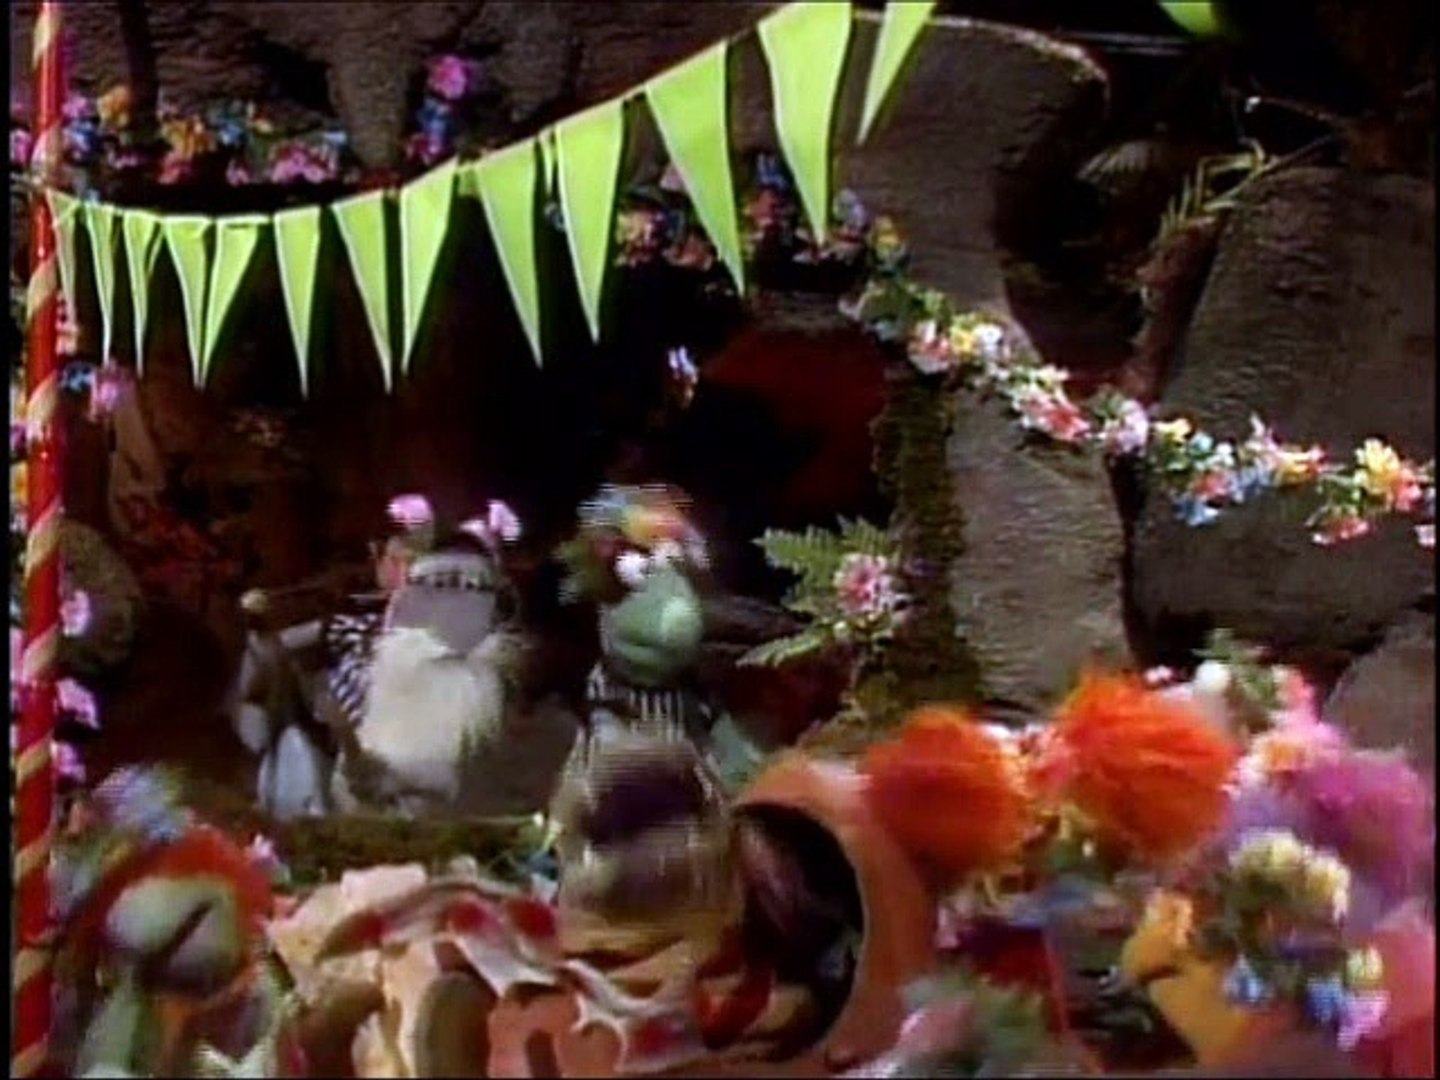 Mr. Conductor Visits Fraggle Rock Episode 59: The Beanbarrow, The Burden and The Bright Bouquet